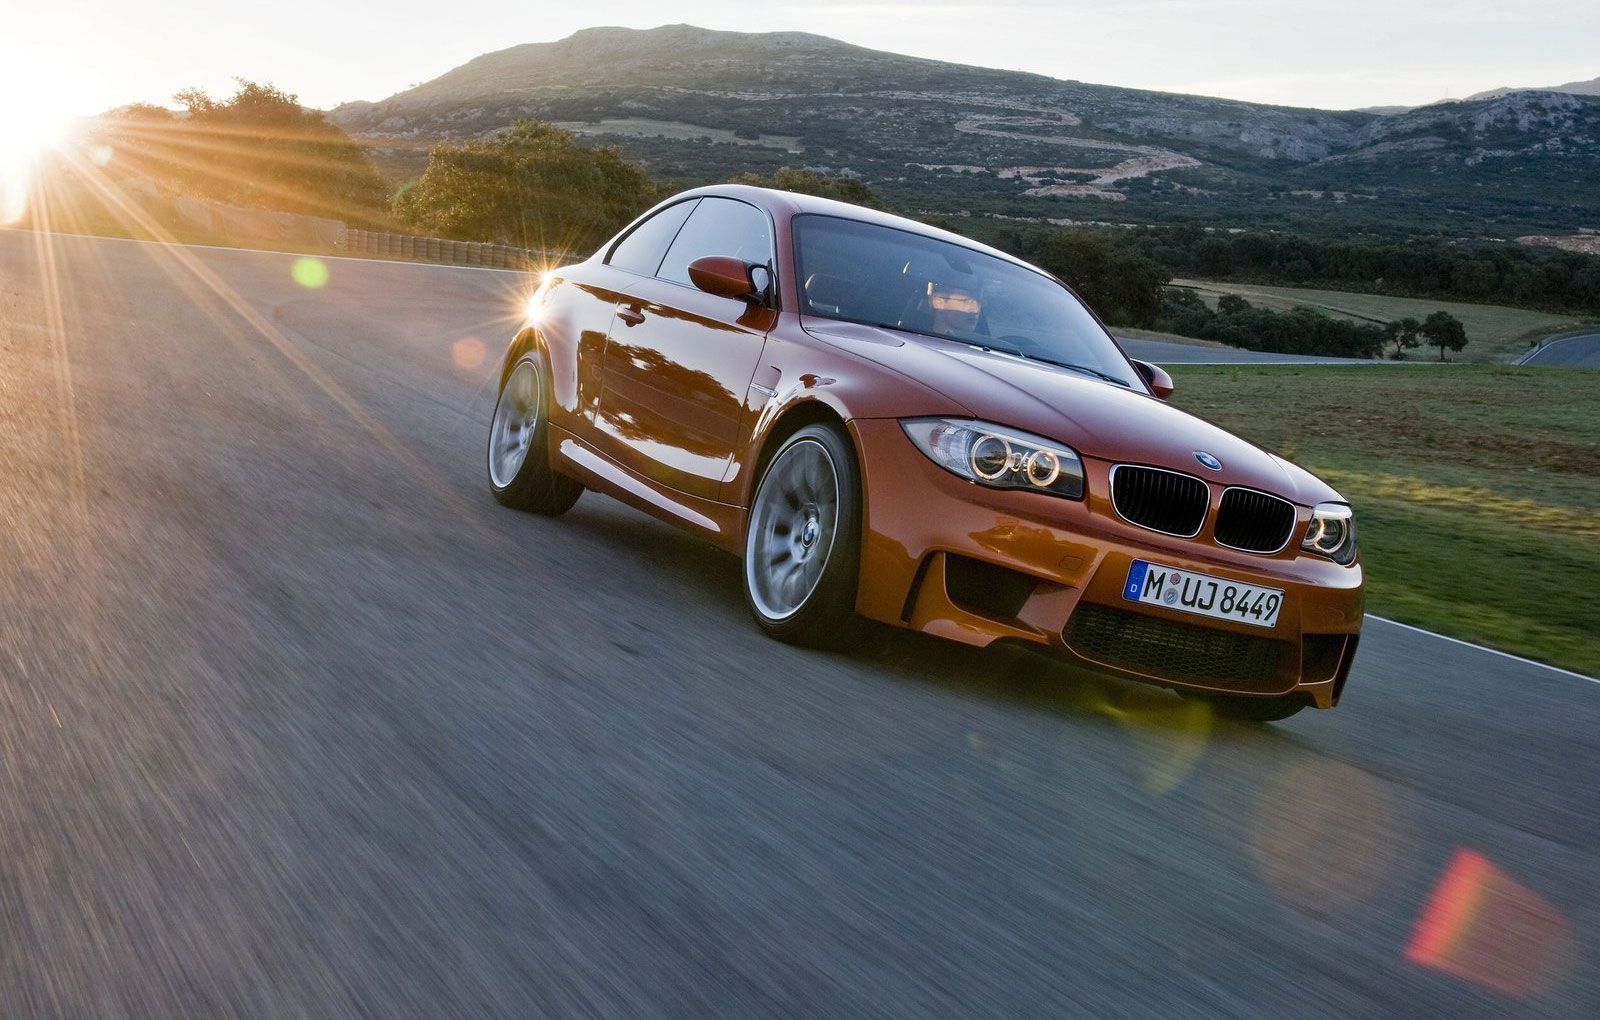 BMW 1 Series M Coupe already breaks a speed record